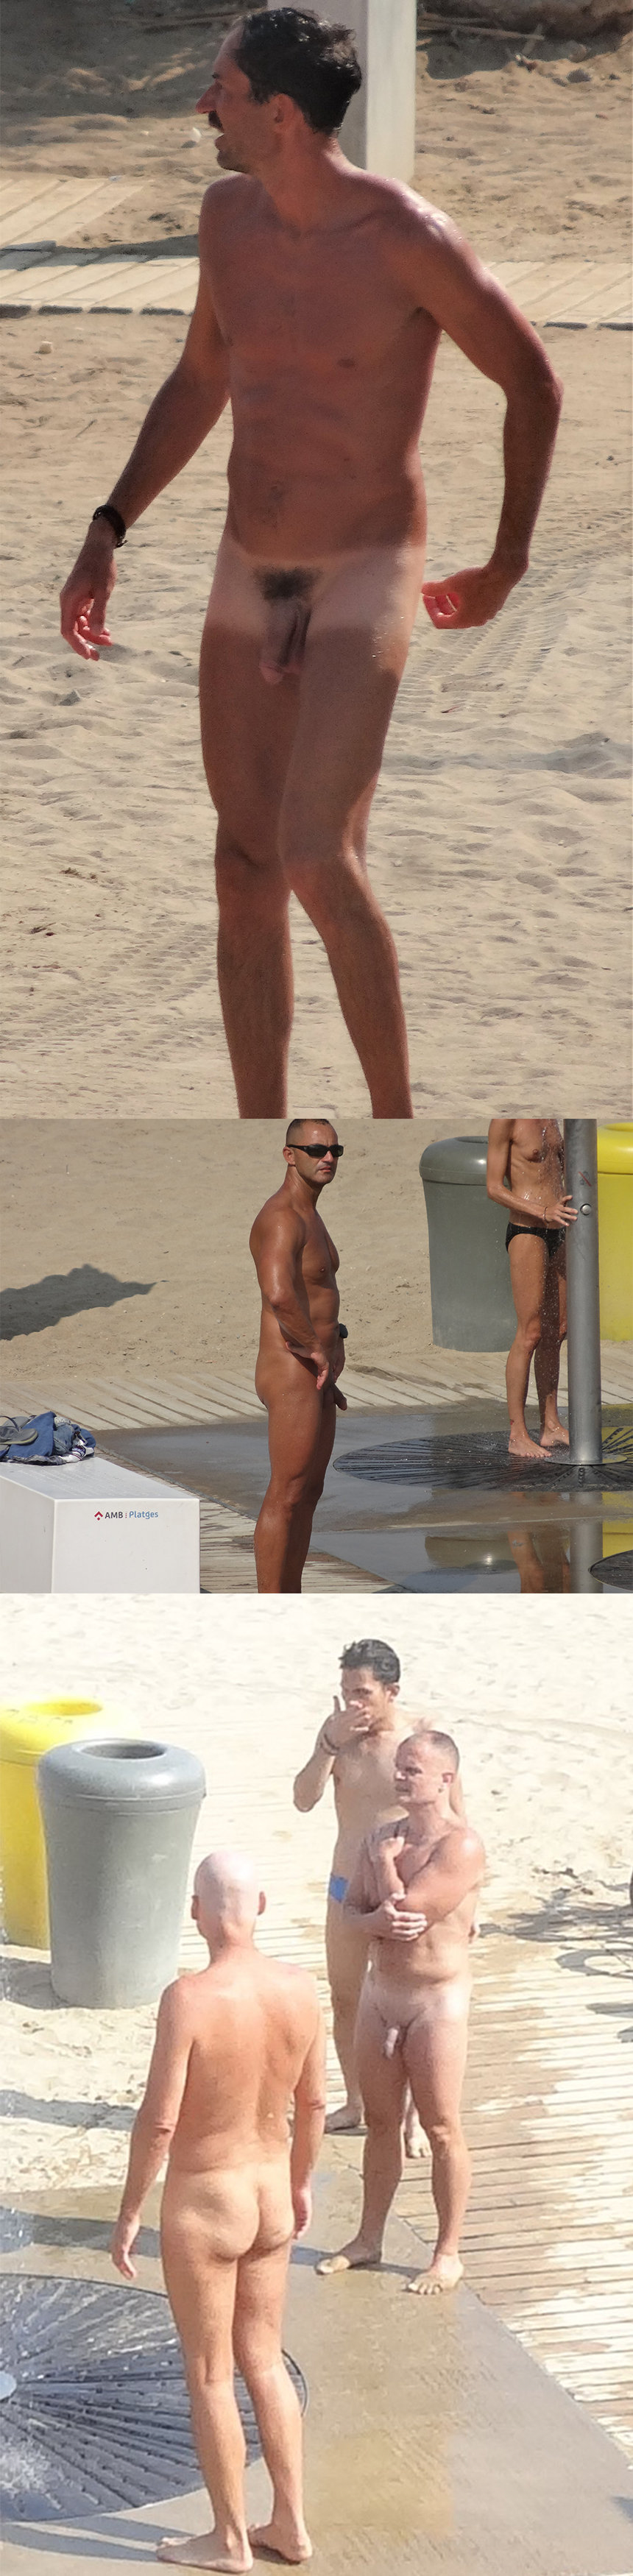 candid pics from nudist guys caught at the barcelona beach